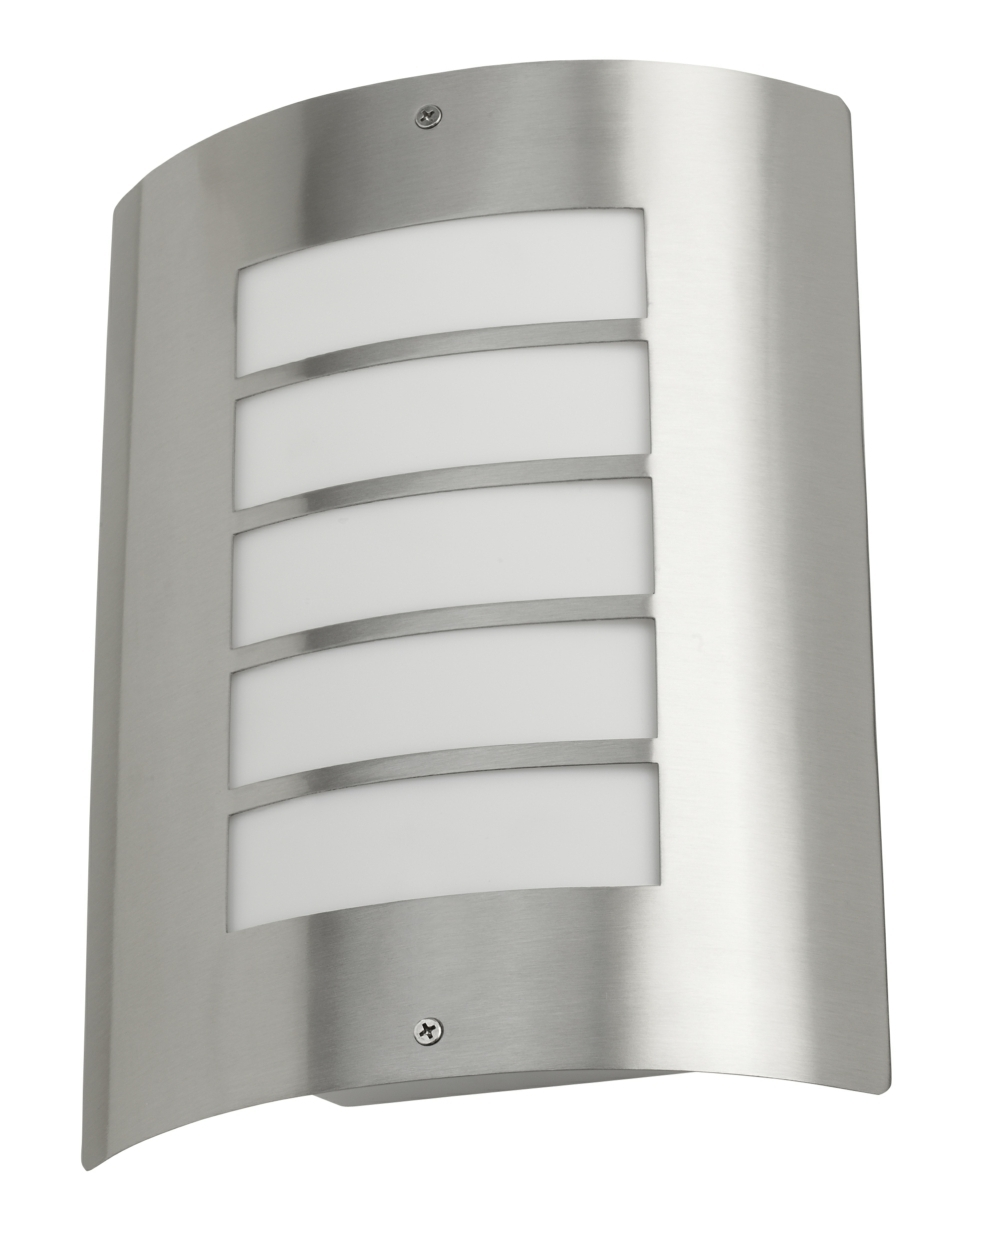 Curved Outdoor Wall Mounted Lighting With Regard To Outdoor Wall Mounted Lighting (View 11 of 15)